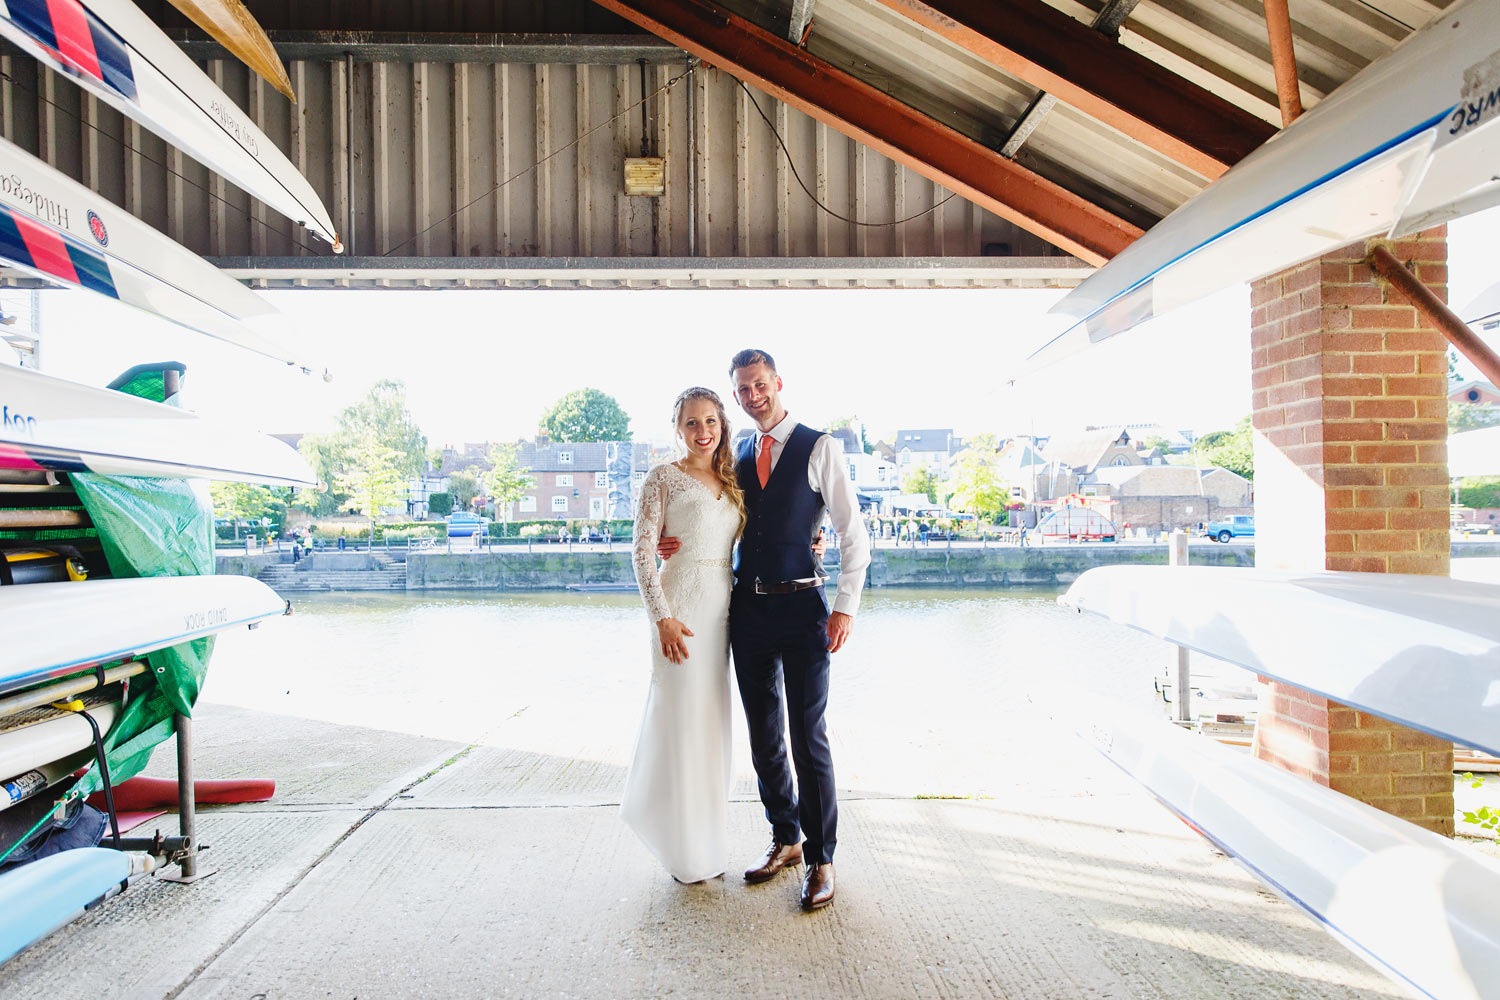 A couple pose for wedidng photographs at Twickenham Rowing Club, London.